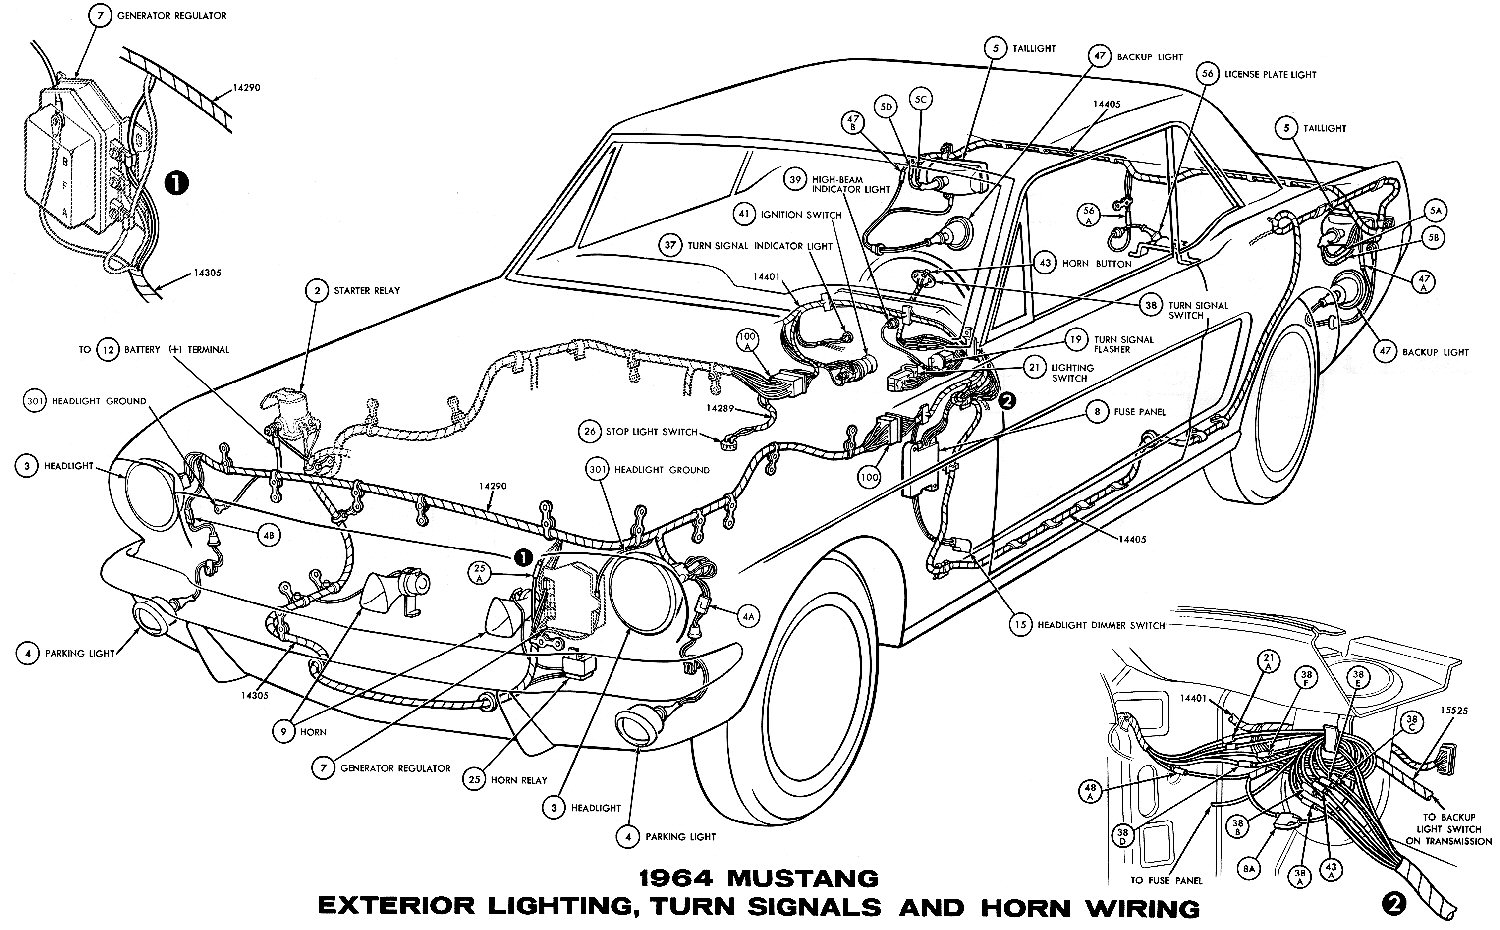 66 Mustang Voltage Regulator Wiring Diagram : 43 Wiring